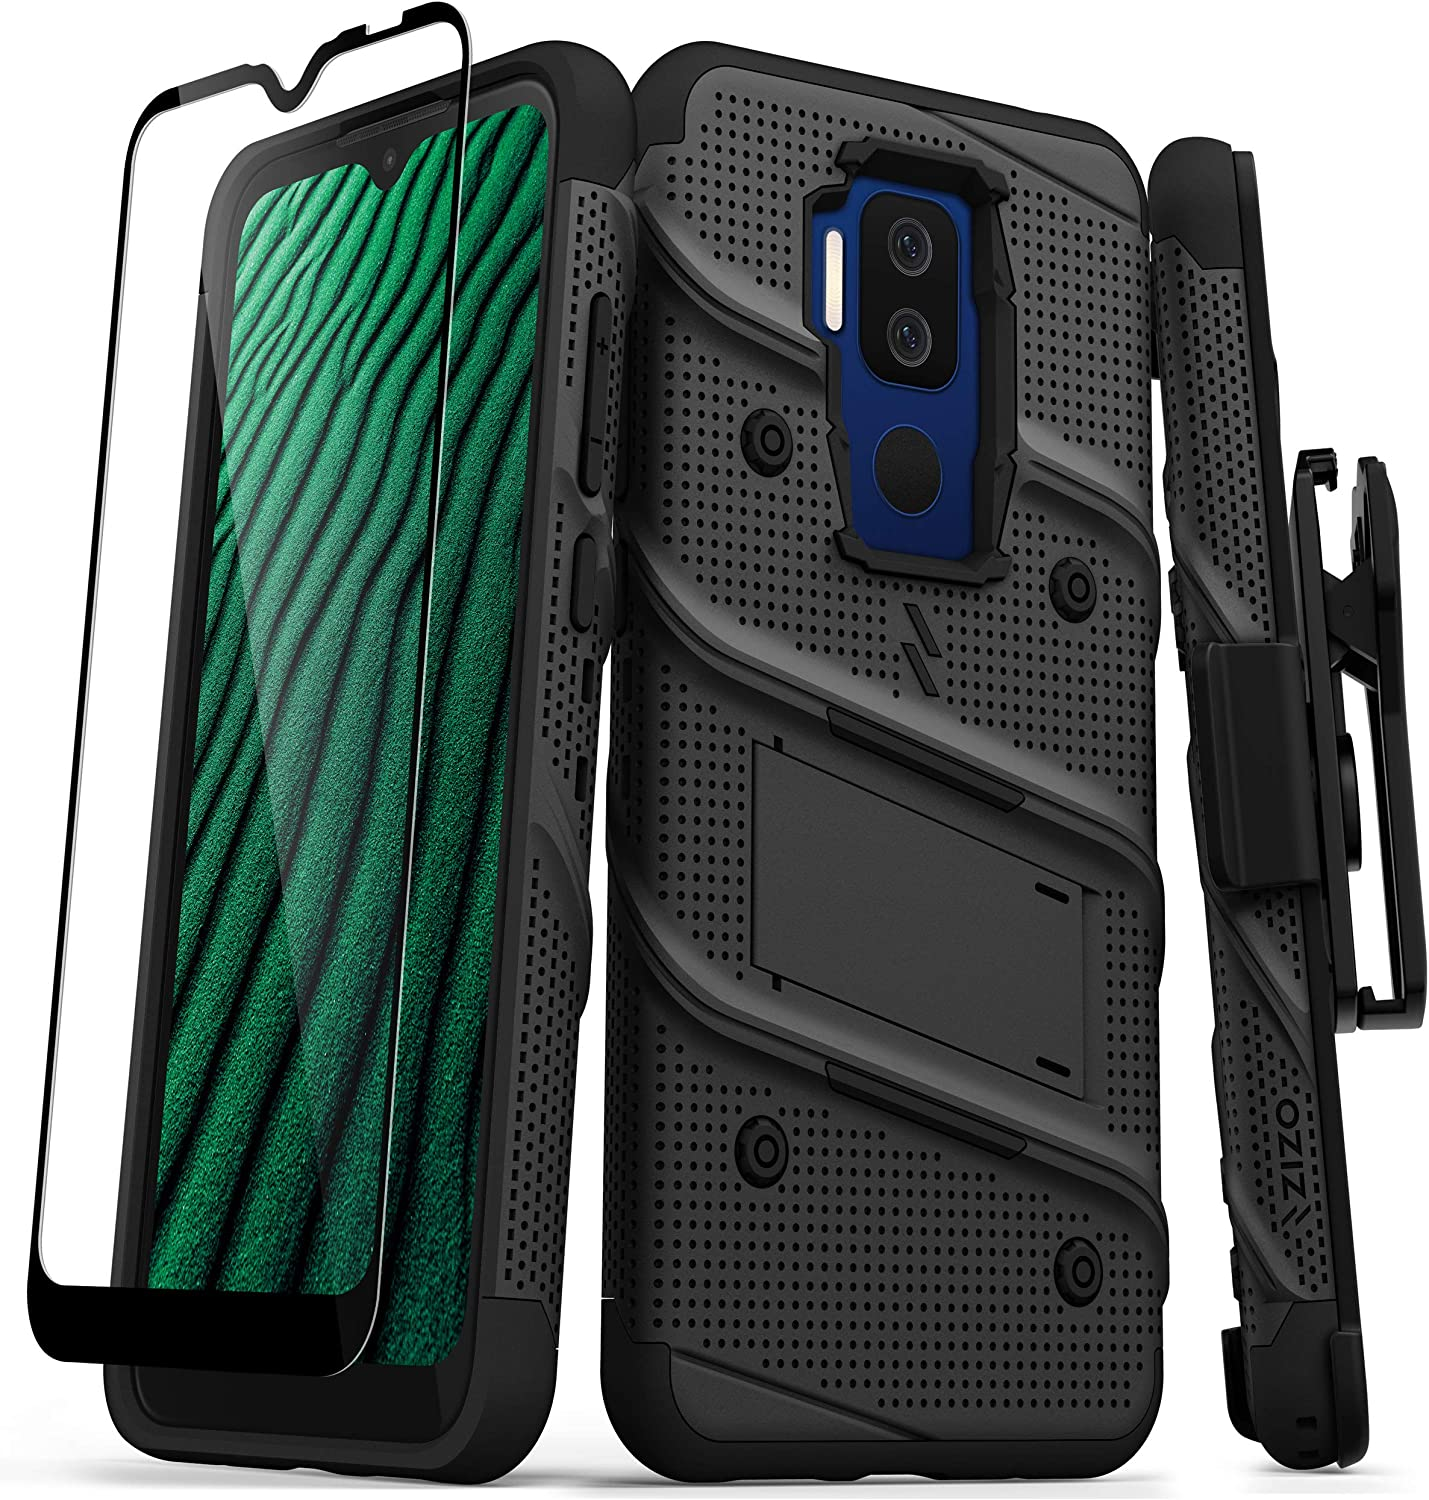 ZIZO Bolt Series for Cricket Influence Case with Screen Protector Kickstand Holster Lanyard - Black